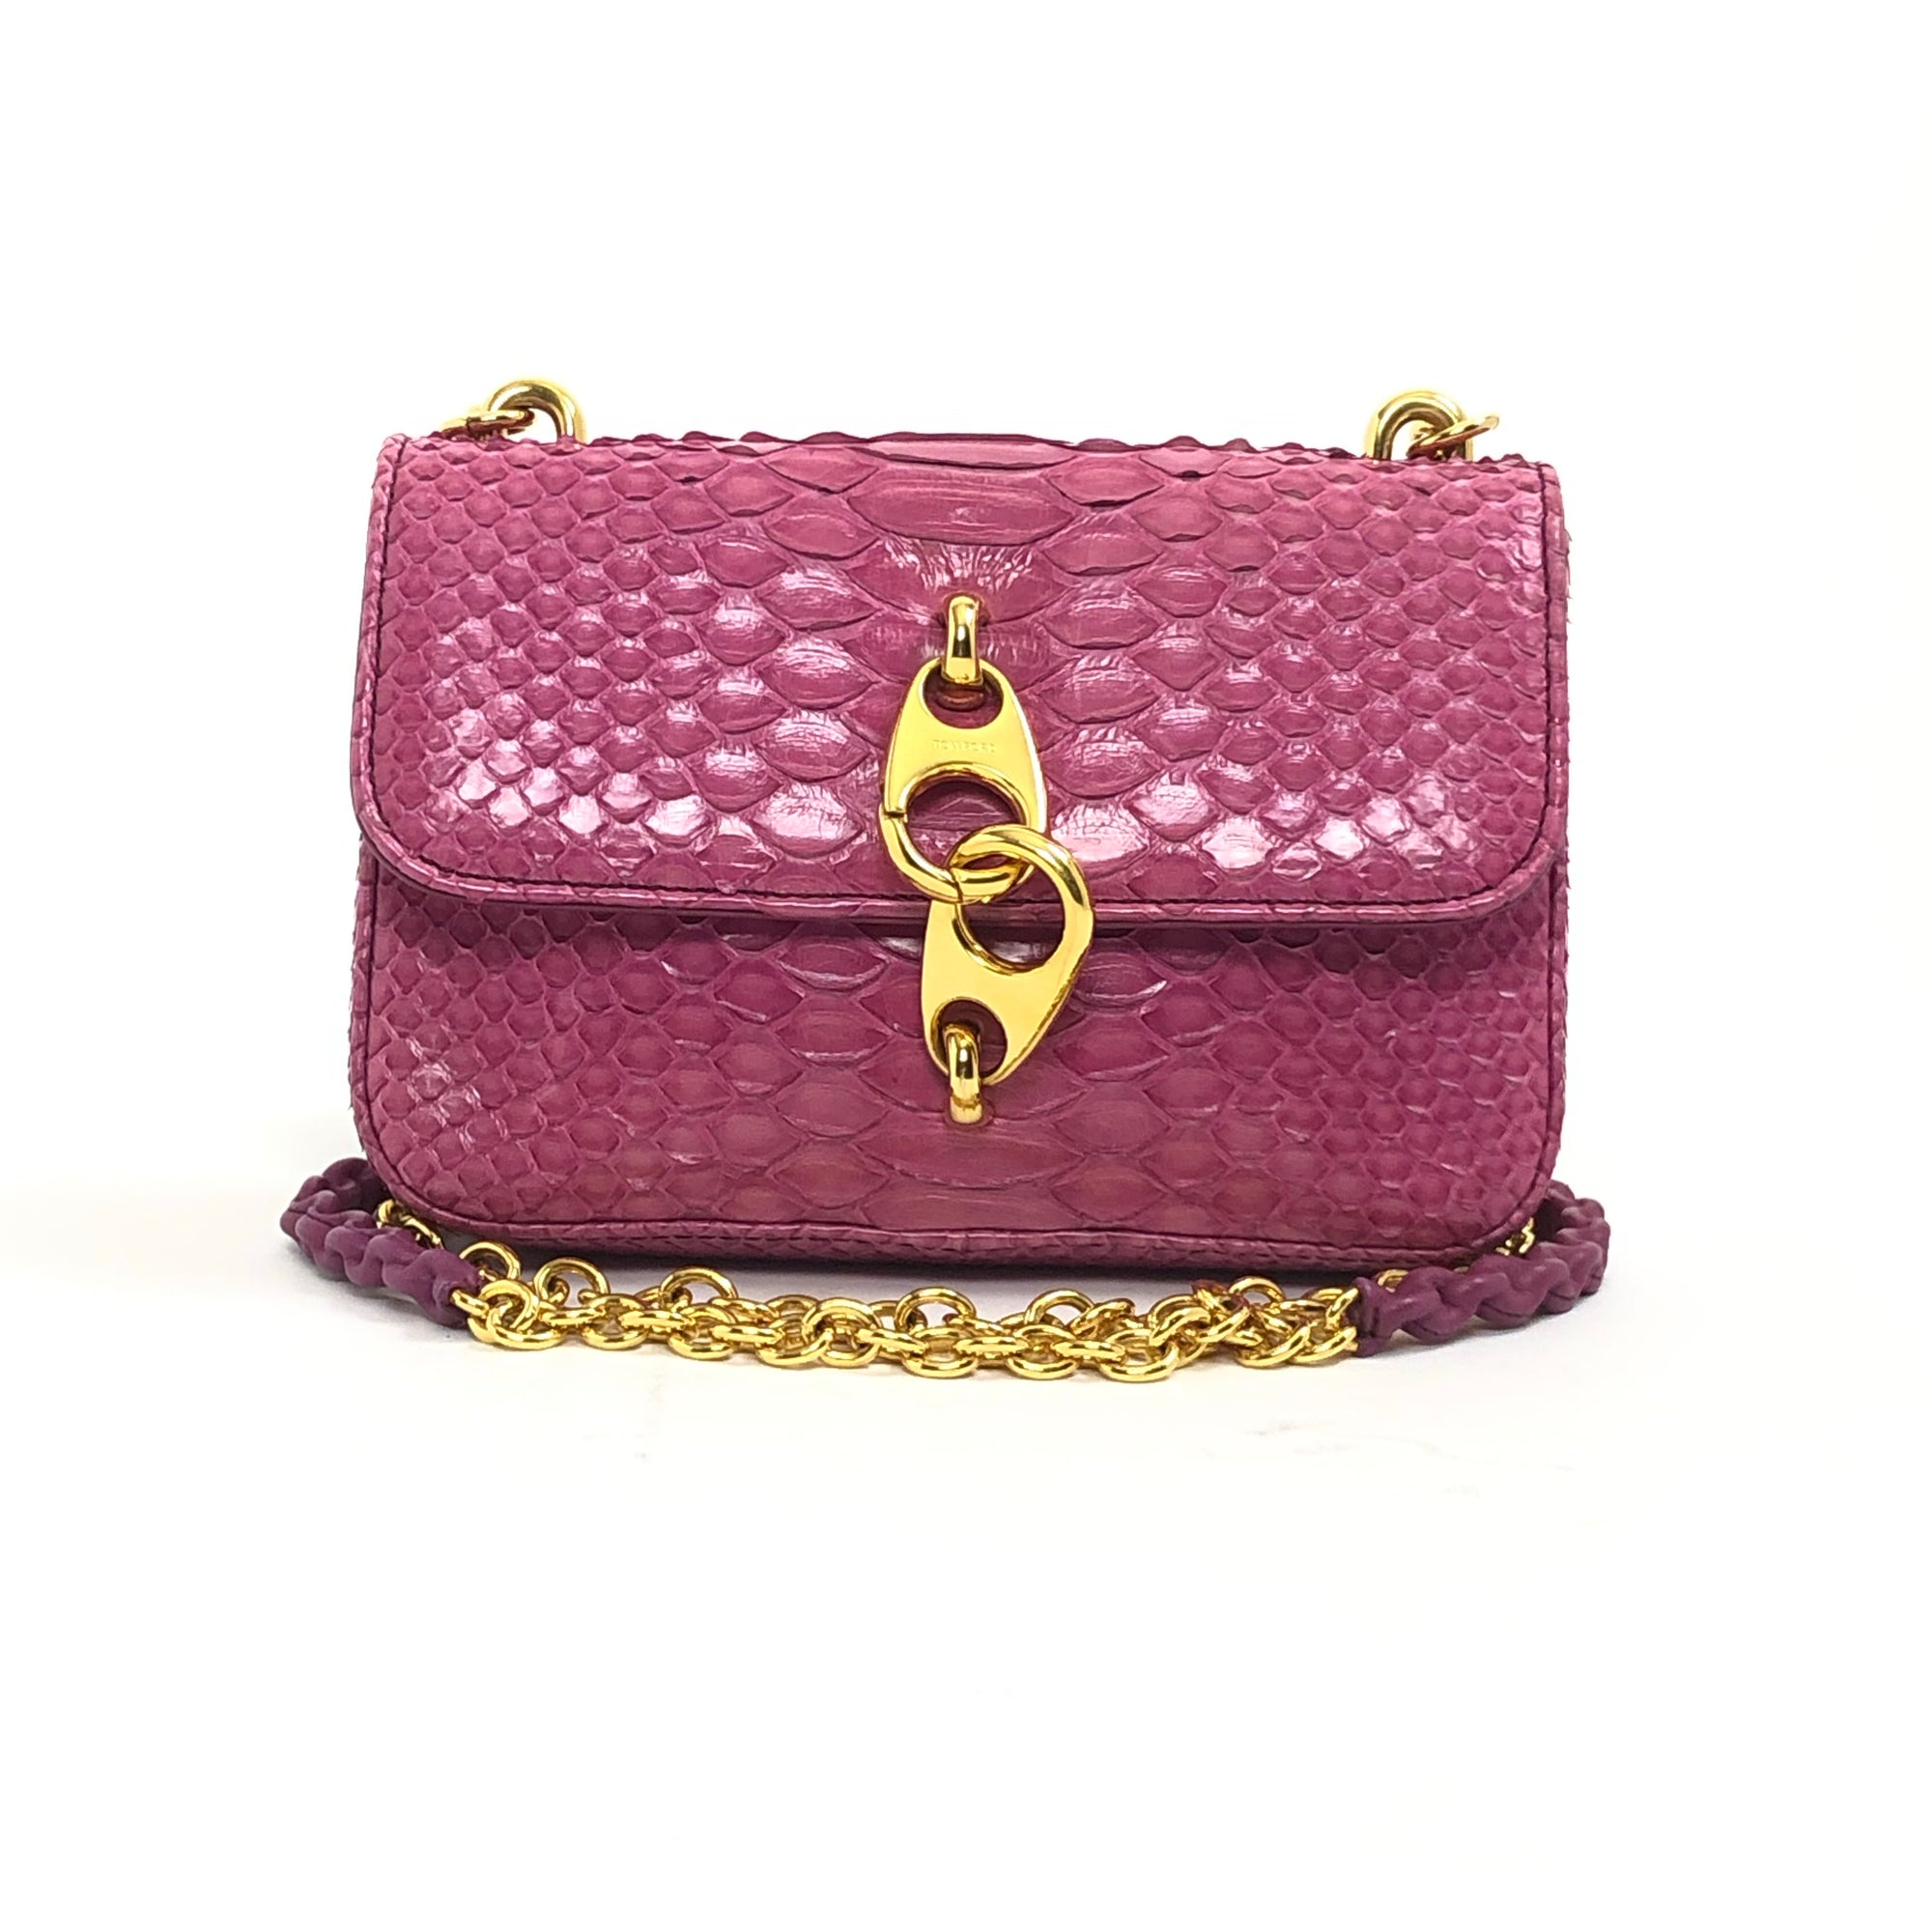 Tom Ford Python Carine Crossbody Bag